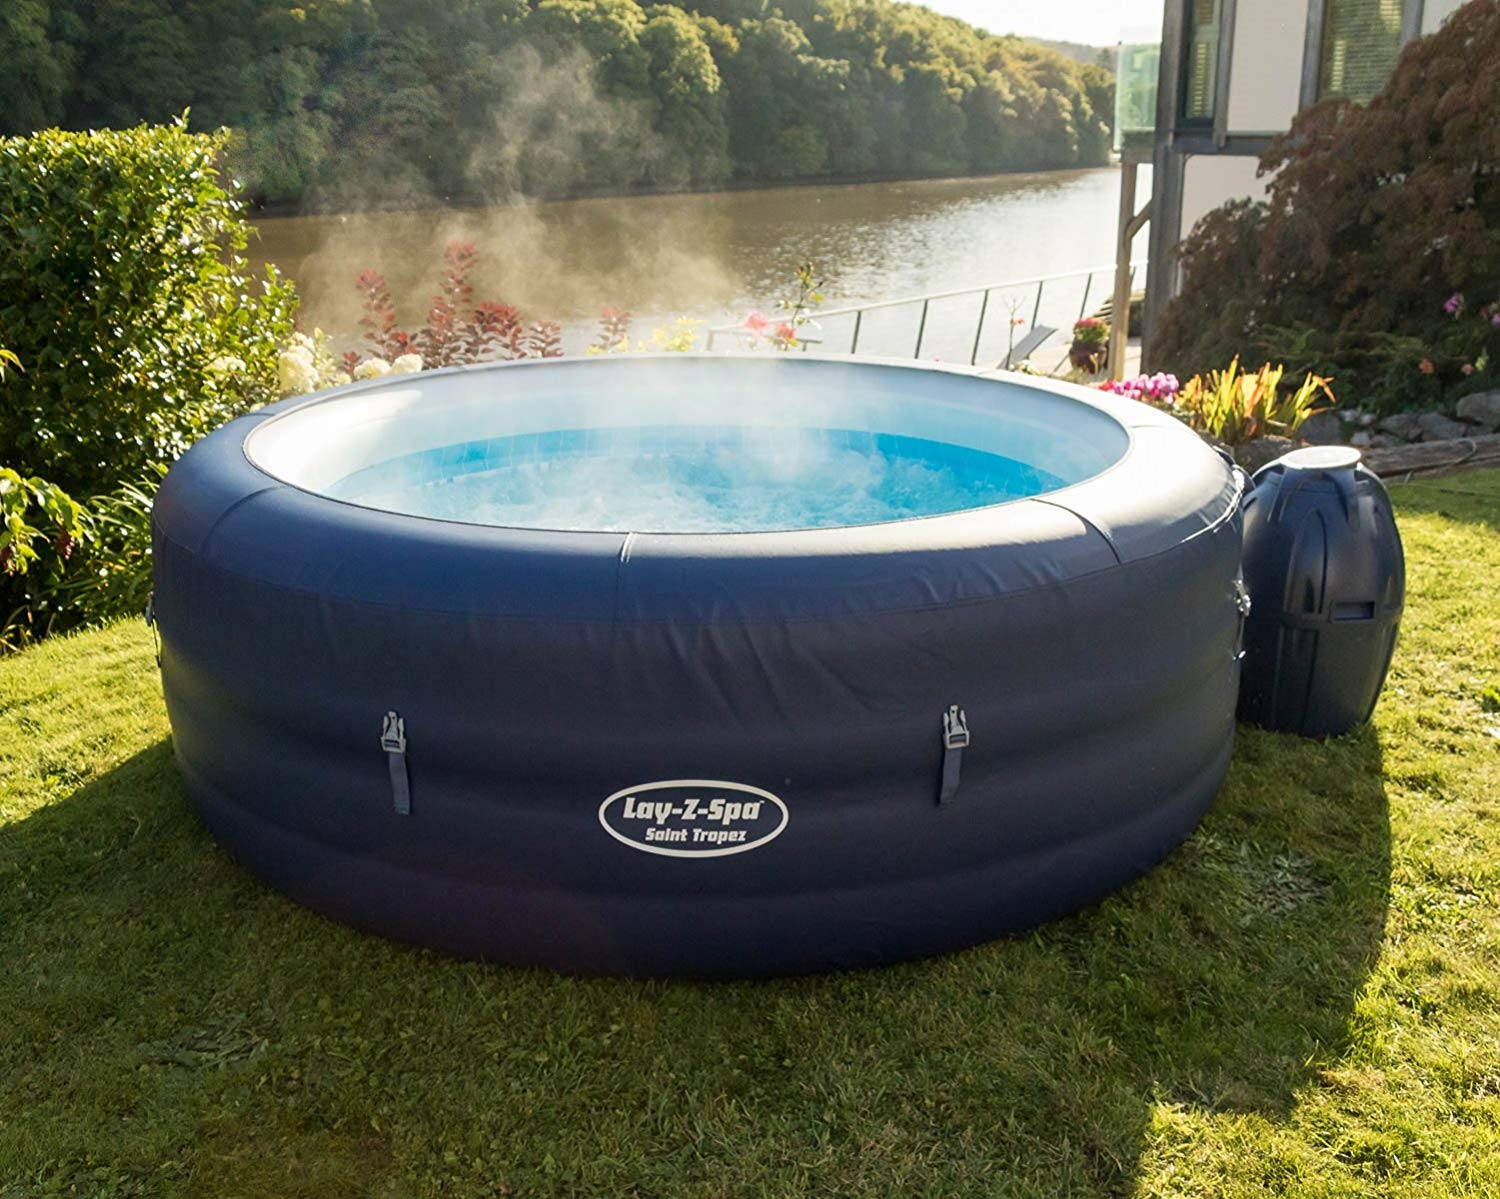 Jacuzzi Pool Amazon Amazon Selling Huge Inflatable Hot Tub In Cheapest Ever Prime Day